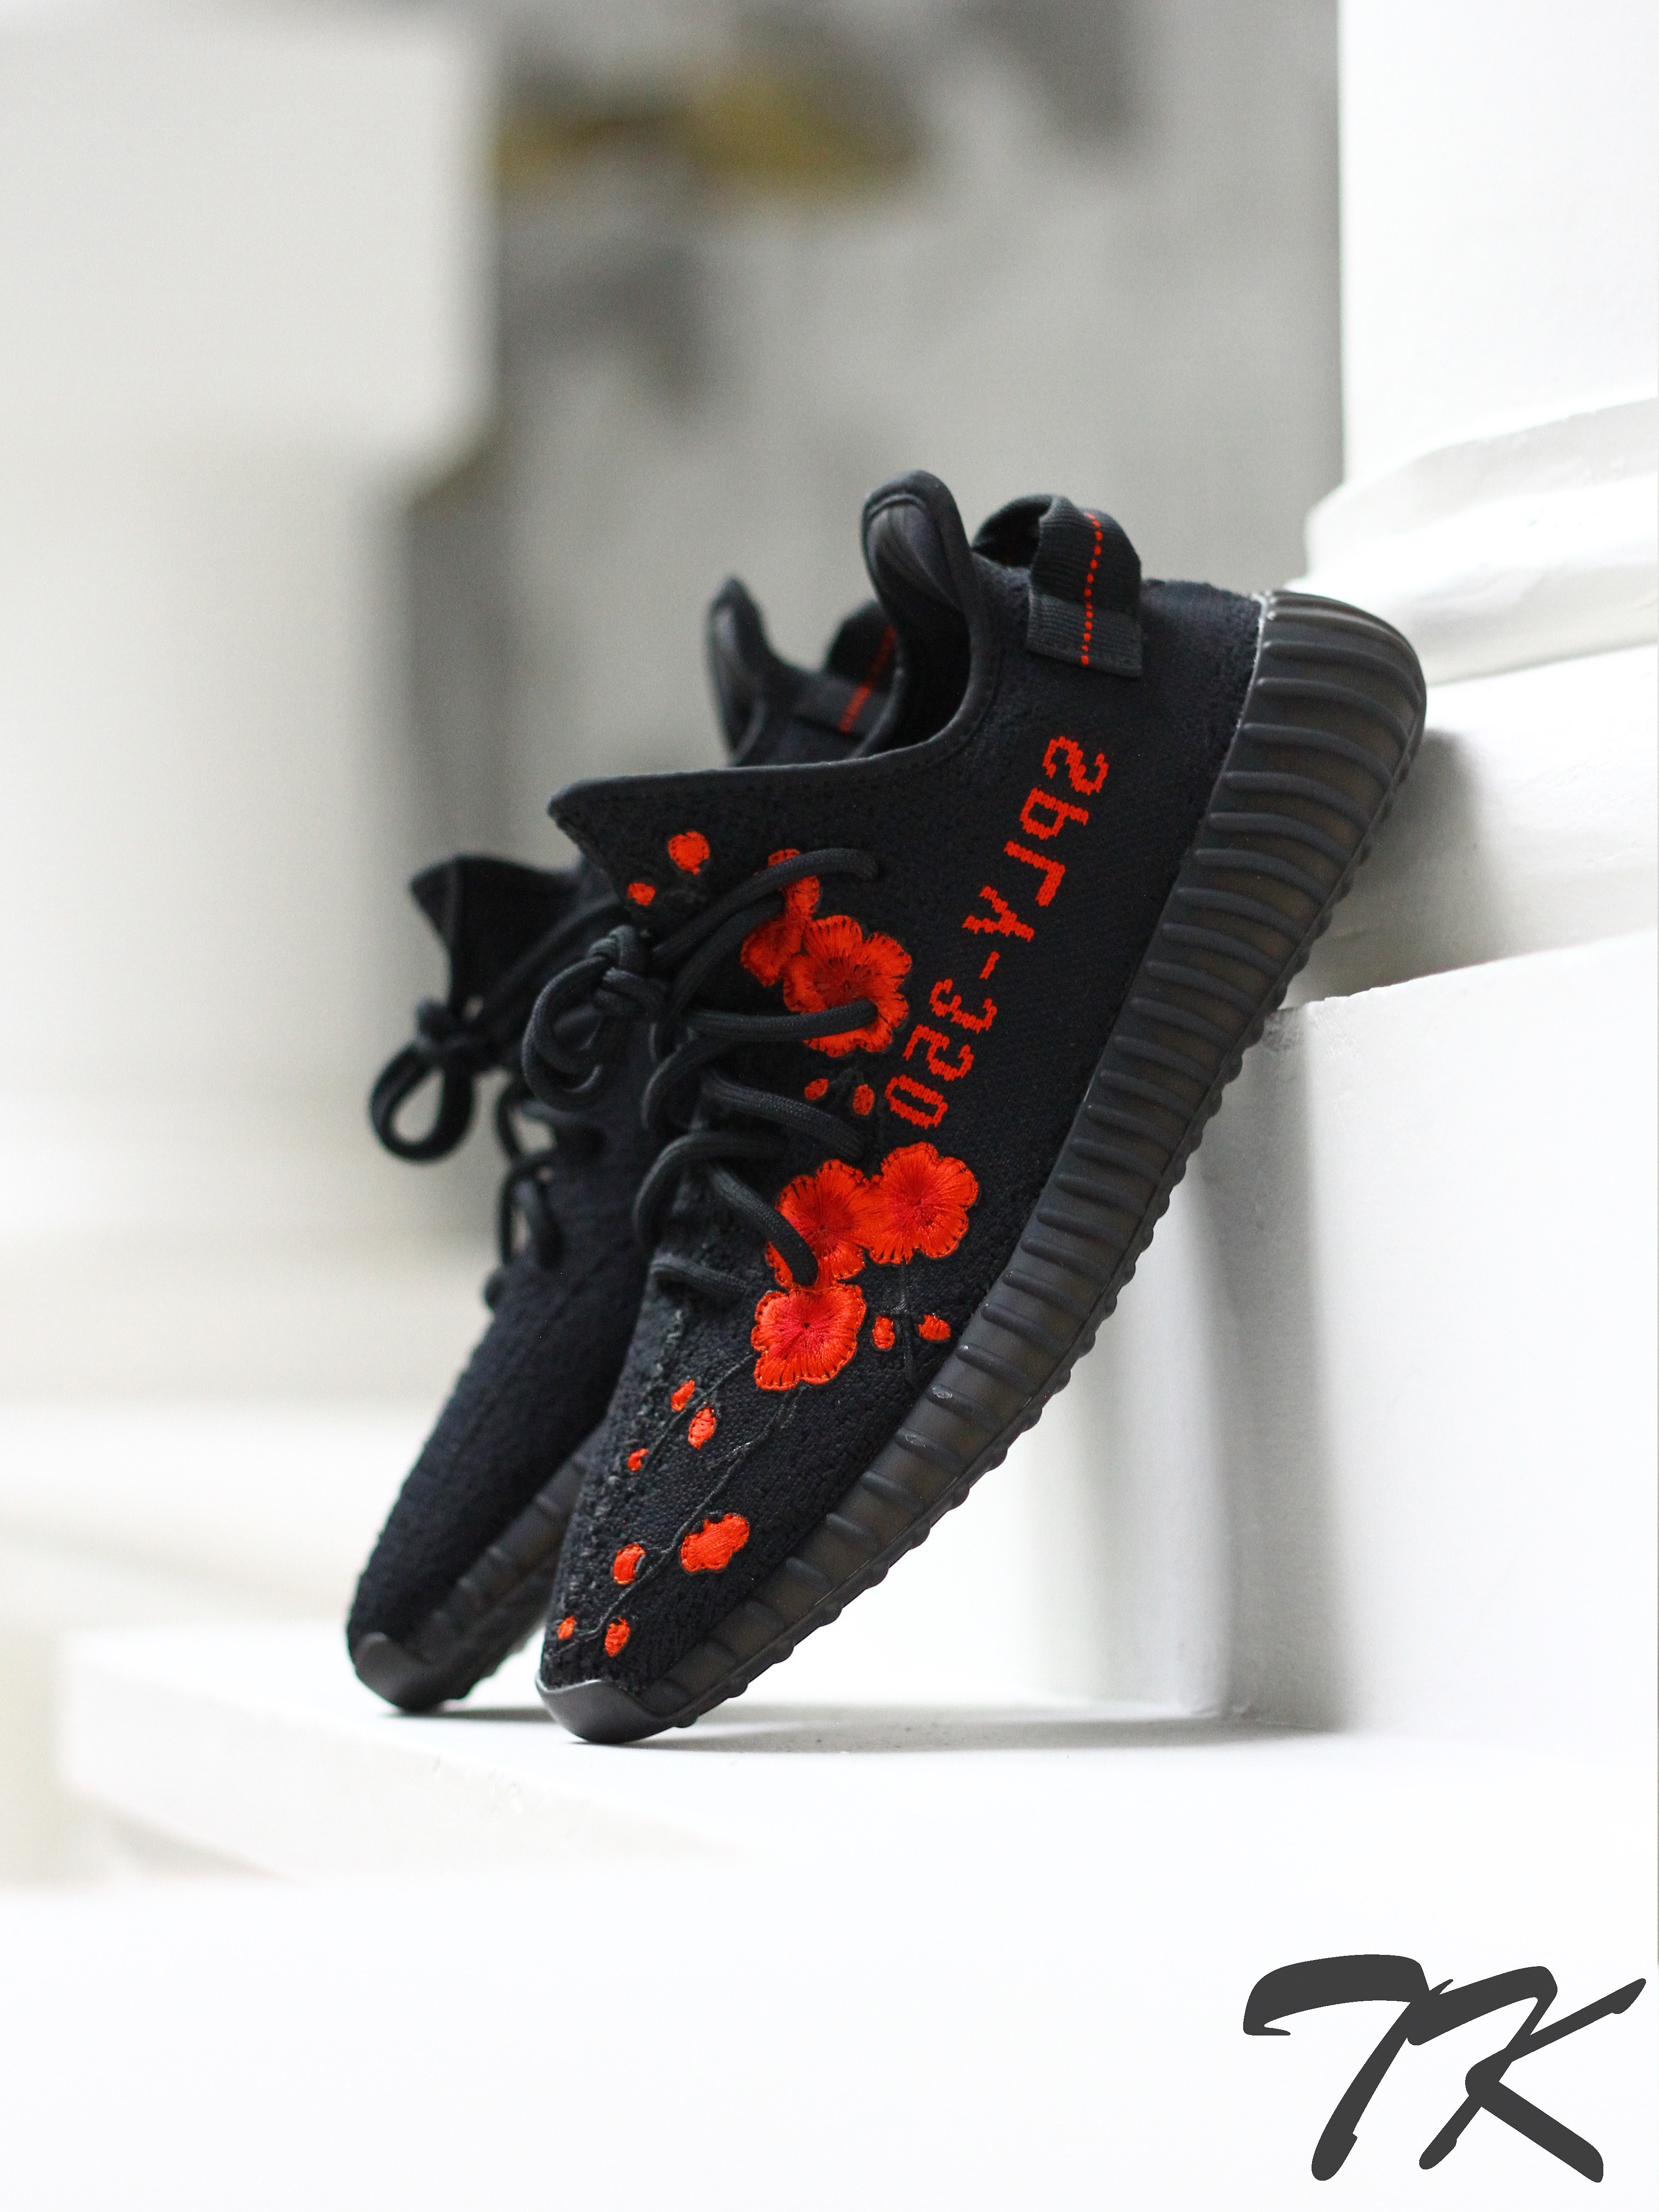 3e4f4c7514c75 ... closeout 1x adidas yeezy boost 350 v2 bred purchased from goat 2x red  cherry blossoms embroidery